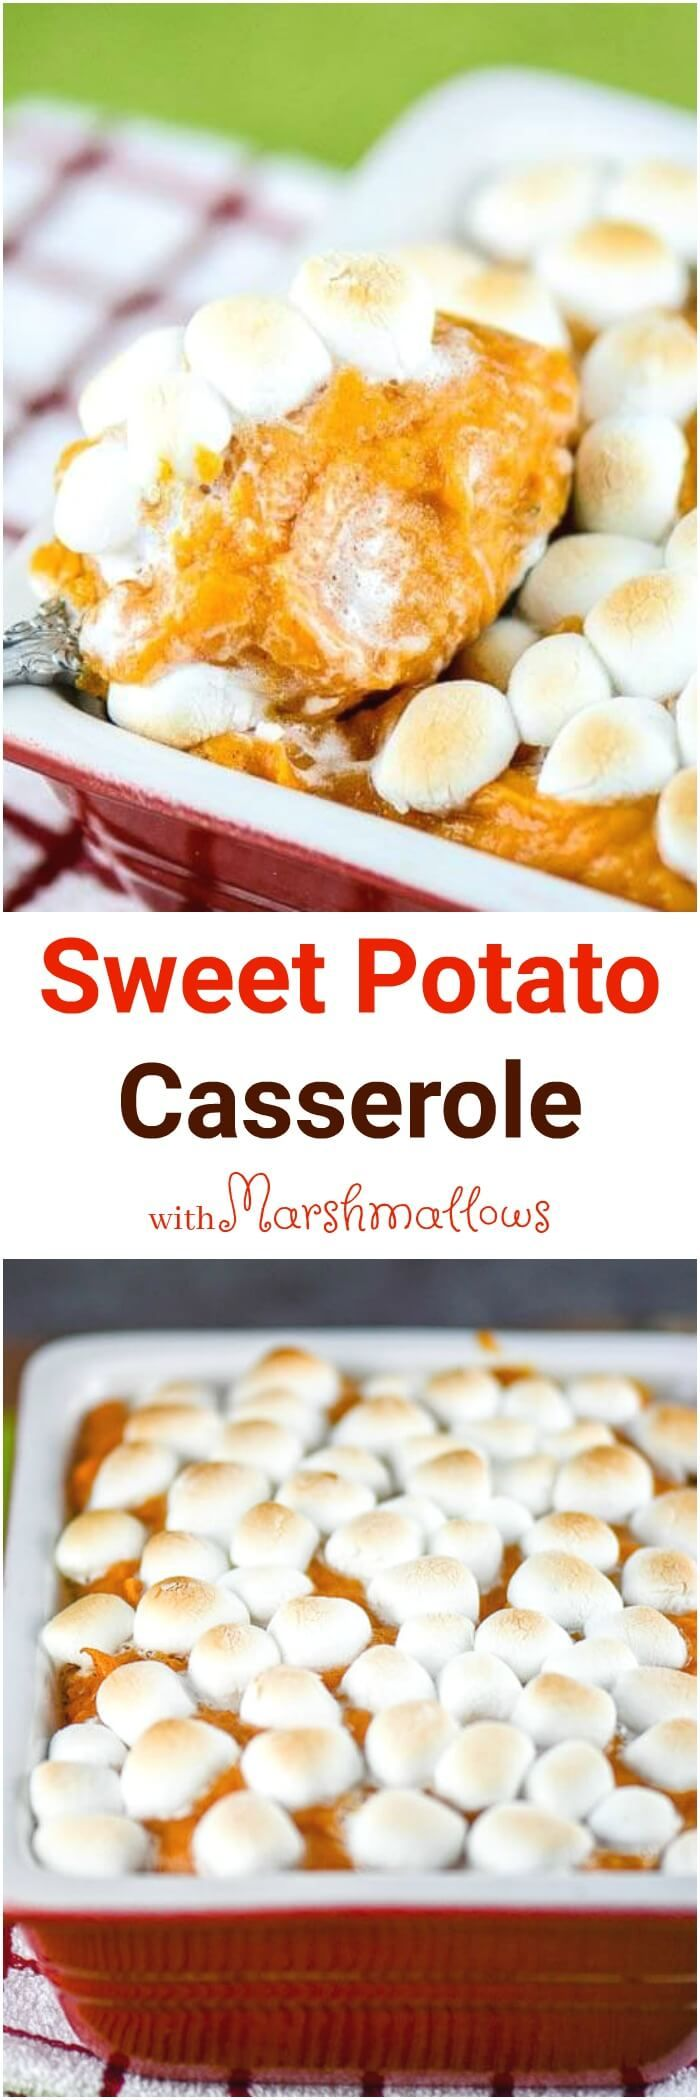 This Sweet Potato Casserole with Marshmallows, made with fresh sweet potatoes, has been a traditional Thanksgiving side dish in our family. via @flavormosaic